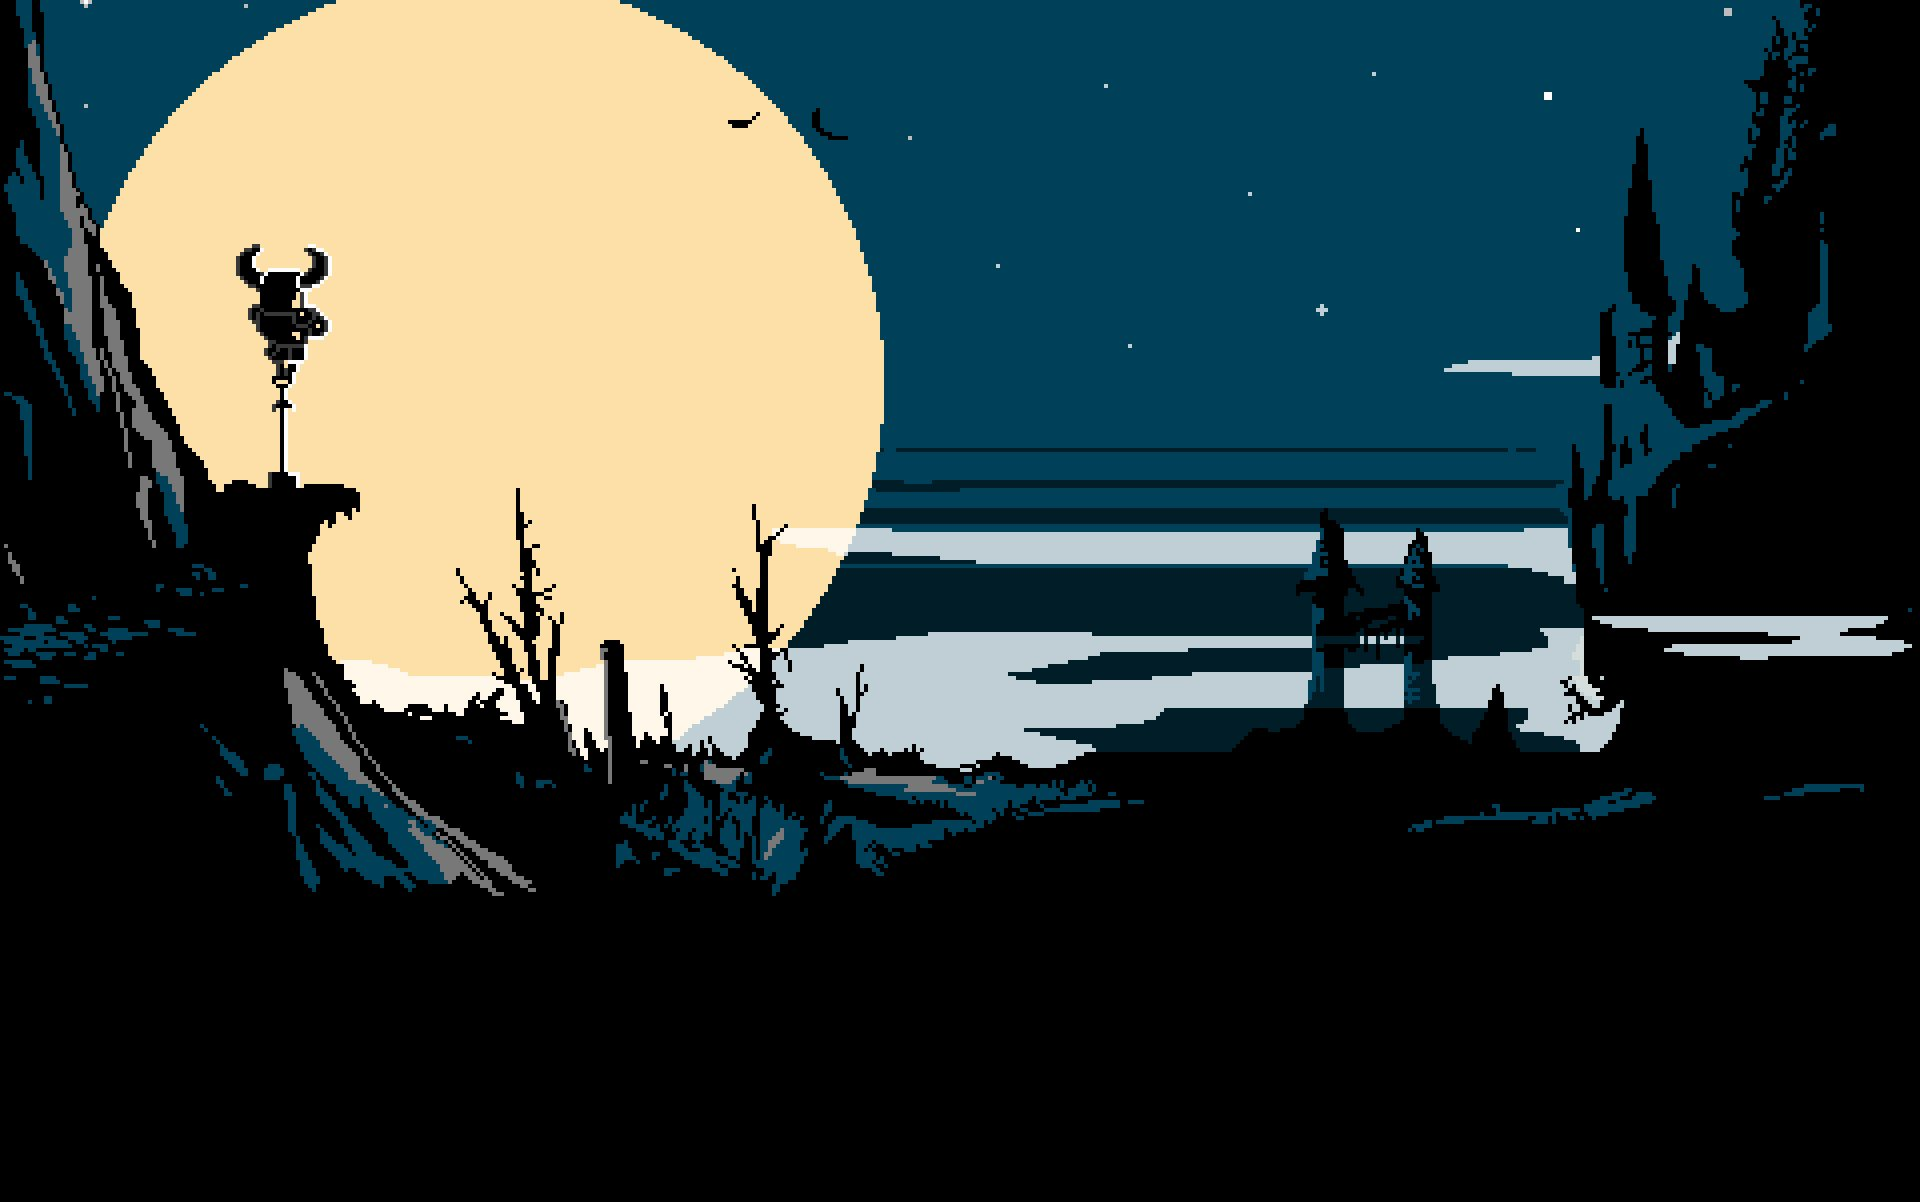 14 Shovel Knight Hd Wallpapers Background Images Wallpaper Abyss